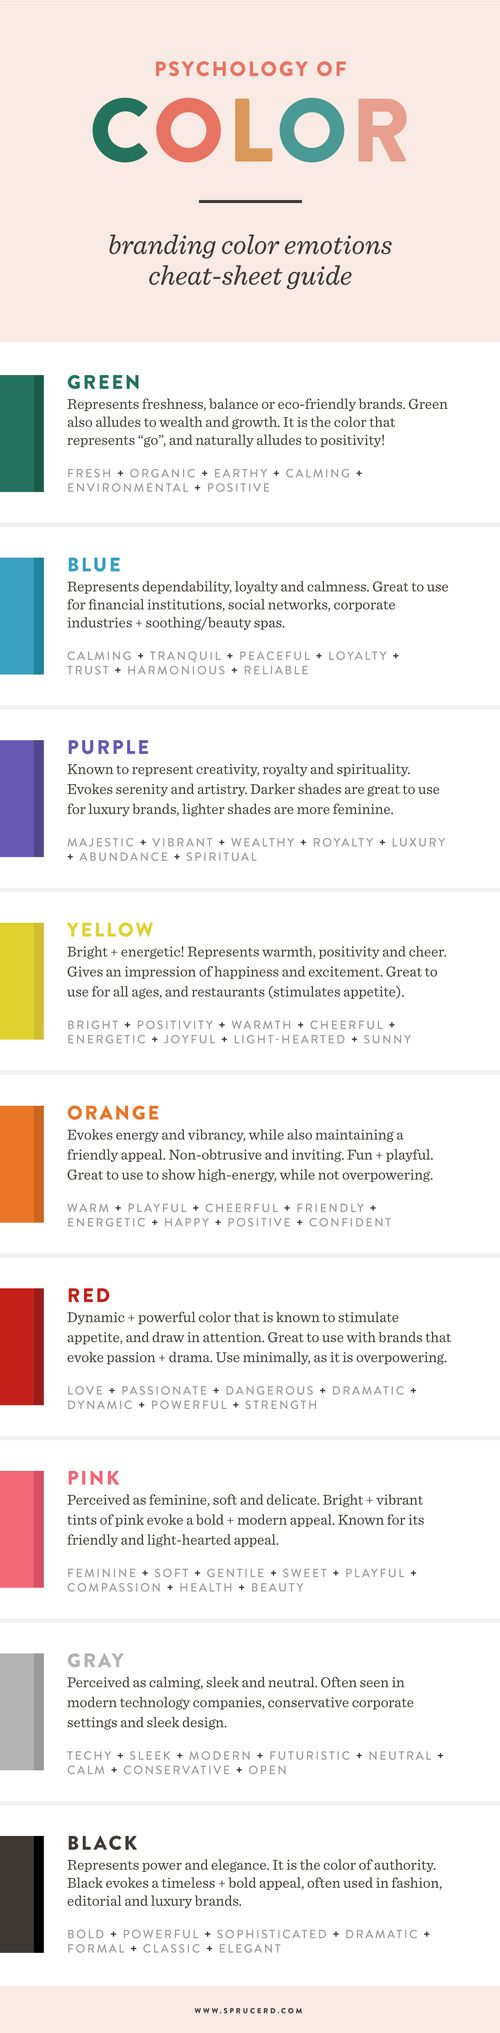 15 best i love color images on pinterest color meanings for Psychology of light in architecture